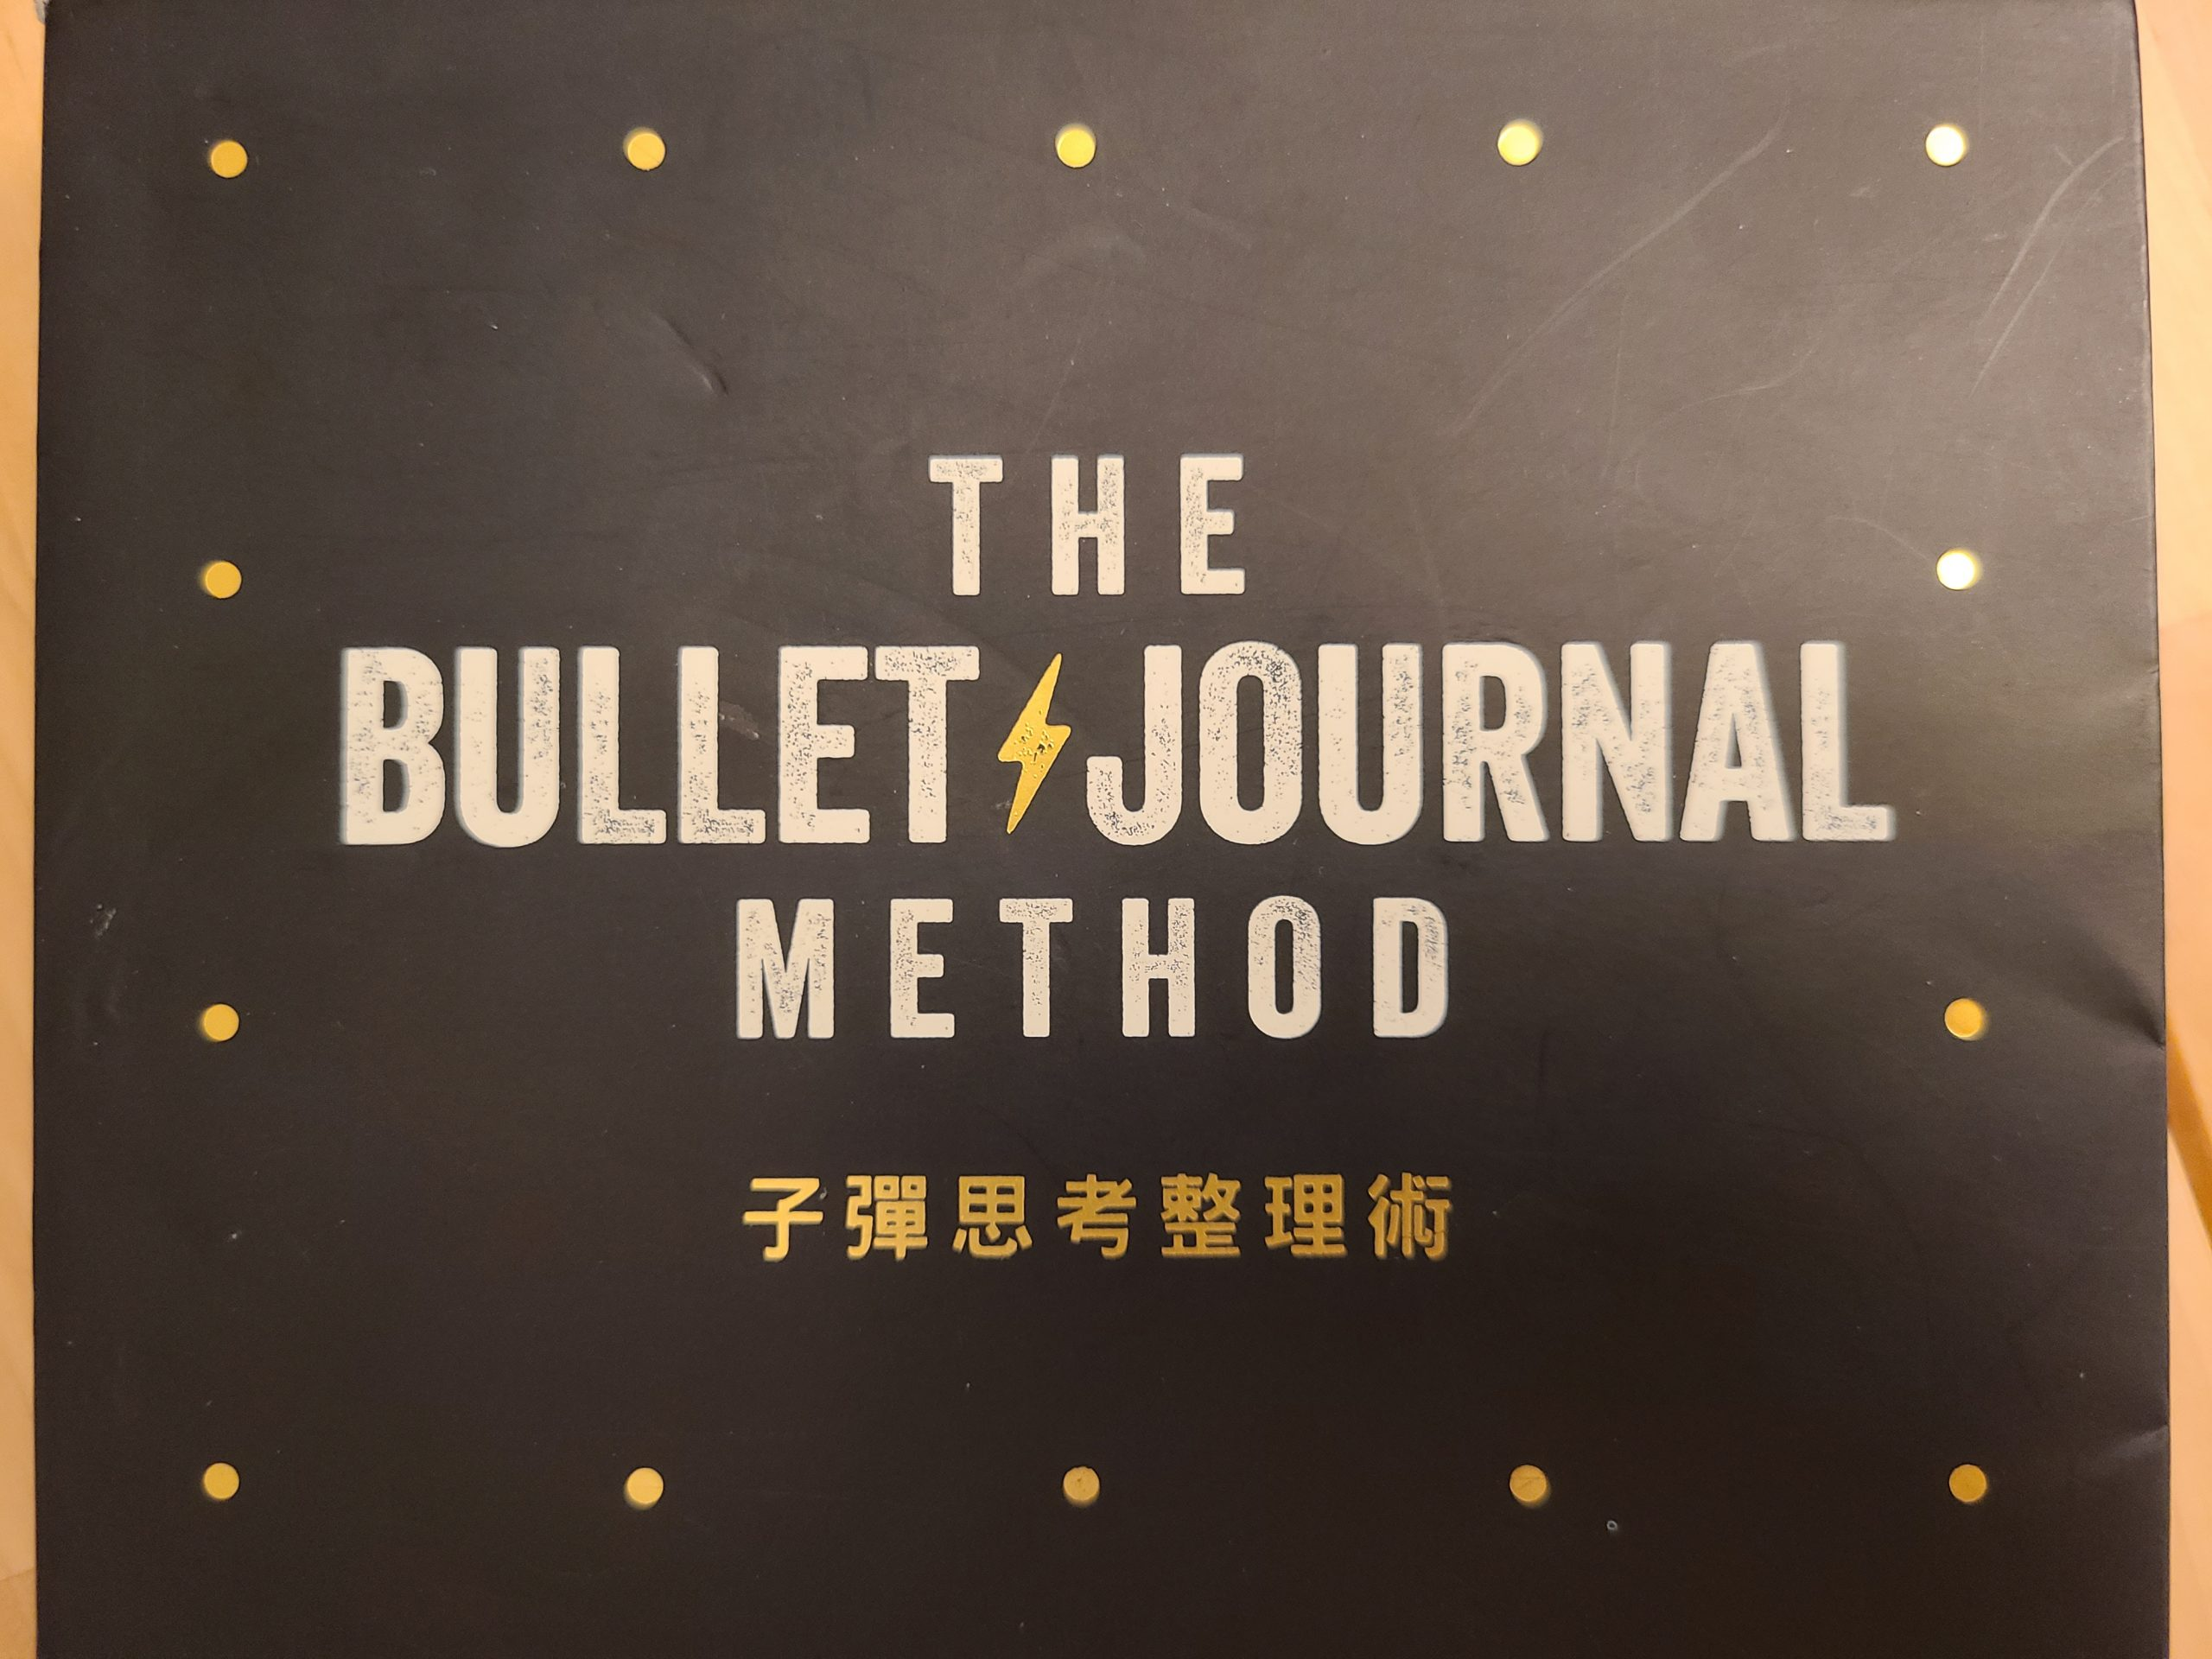 【書籍介紹】翻譯書/ 子彈思考整理術 (The Bullet Journal Method)